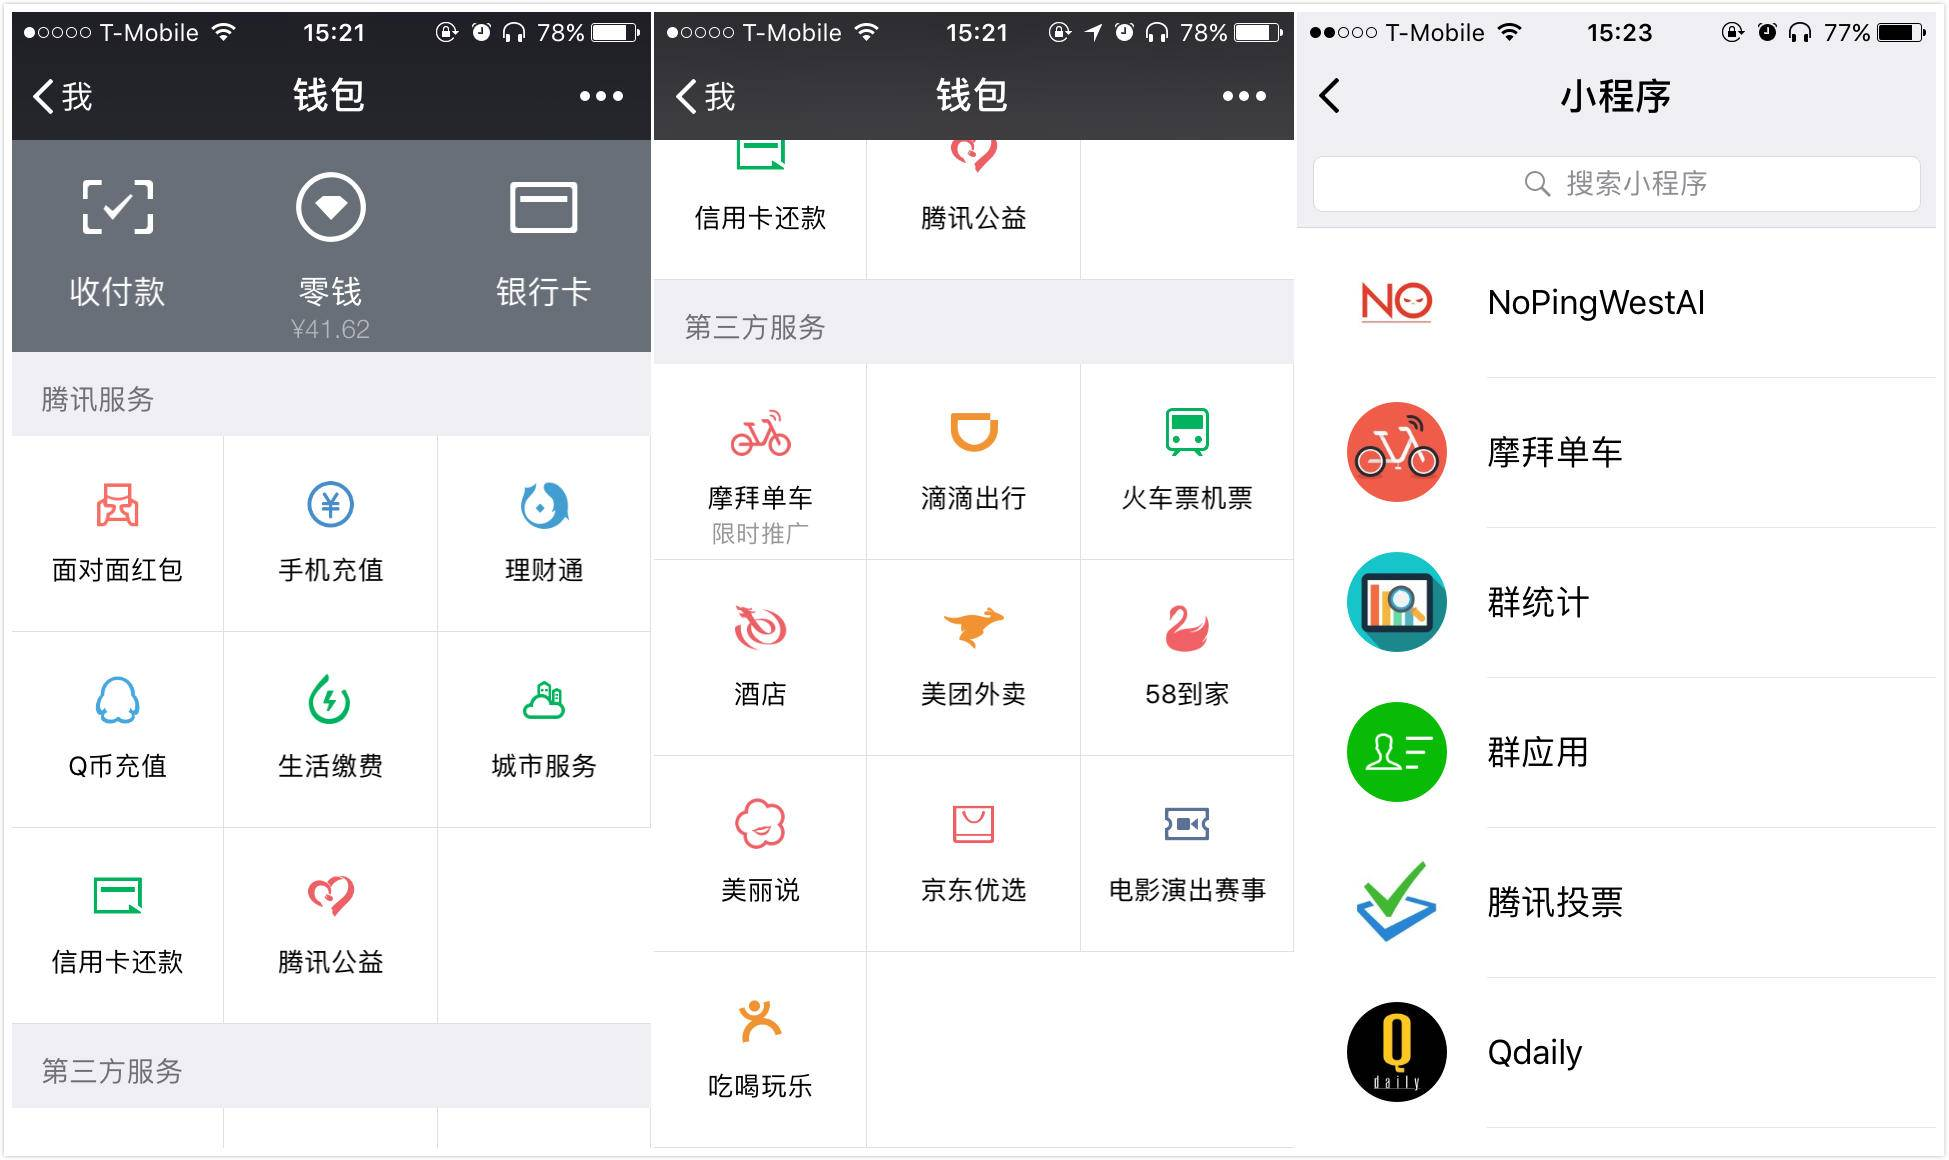 wechat-3rd-party-features